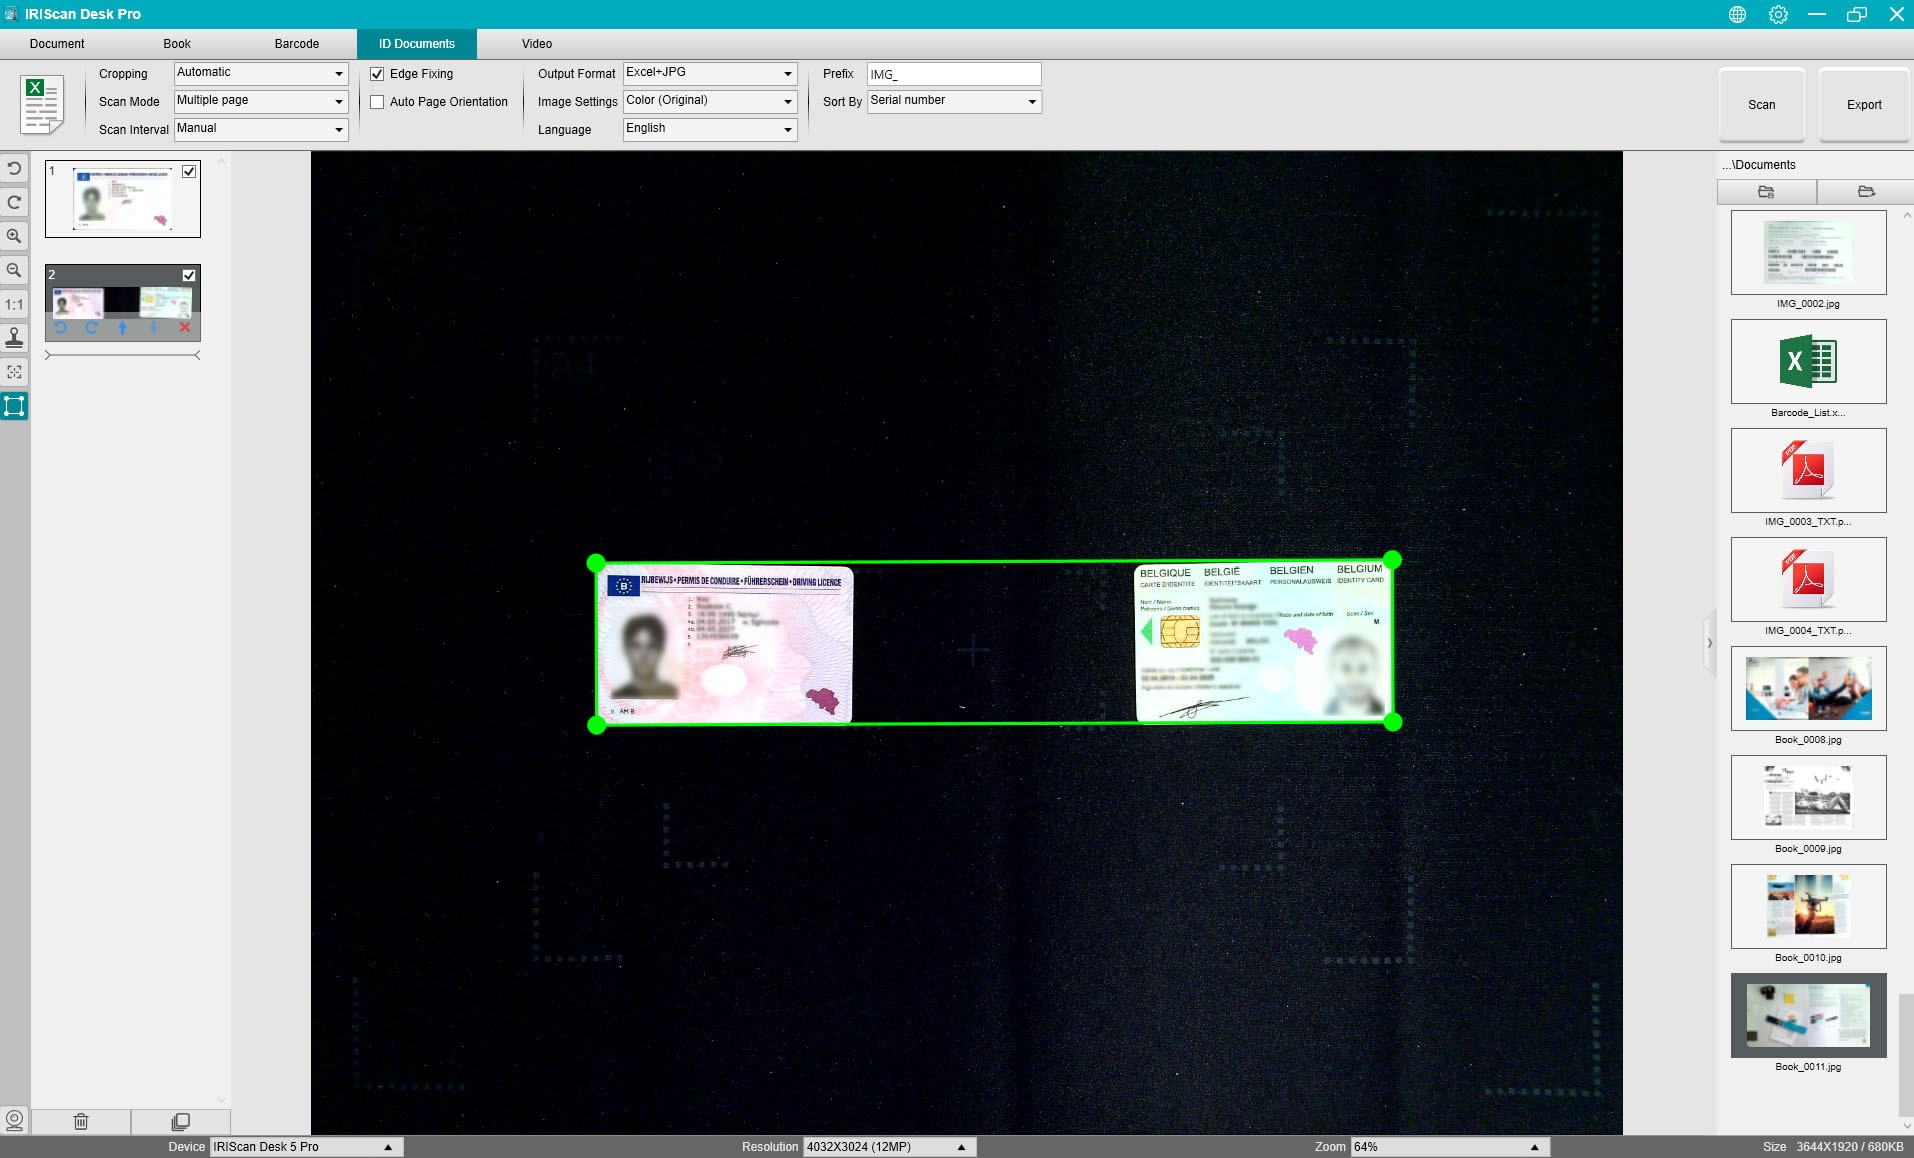 Screenshot von IRIScan Desk